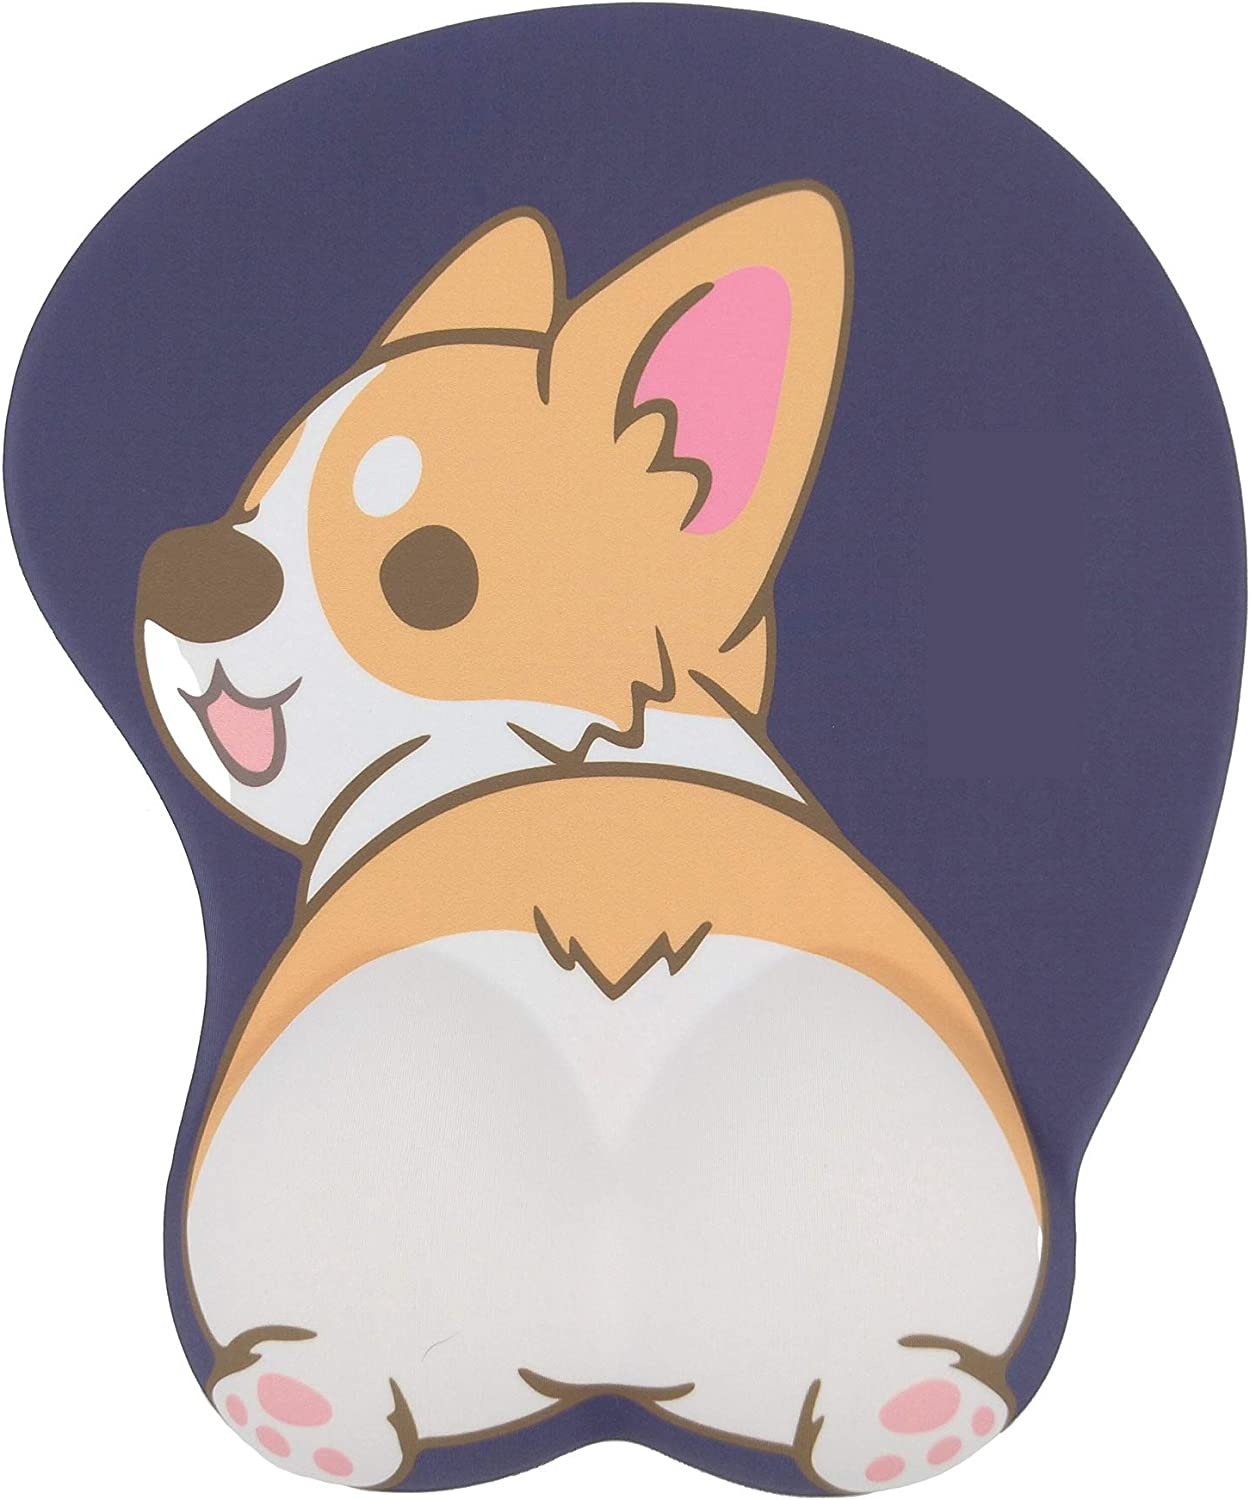 Mouse Pad with Wrist Support 3D Corgi Butt Mousepad Anime Dog Non Slip Silicone Mouse Mat for Desk Laptop (Navy Blue)